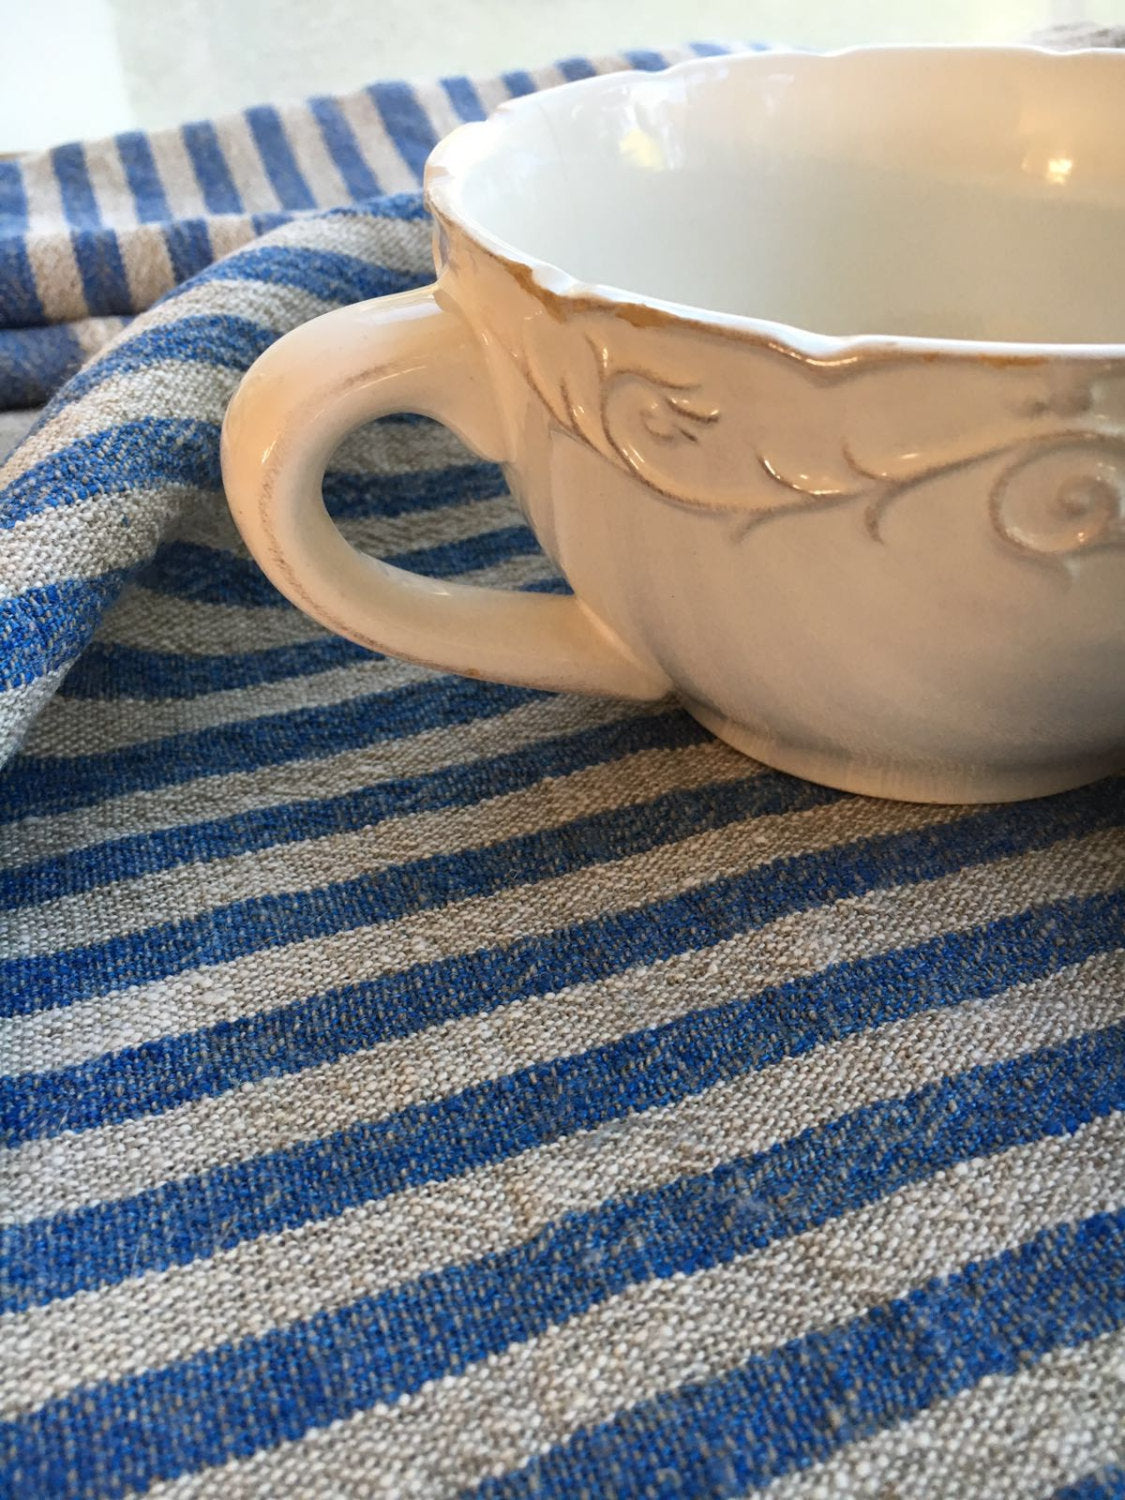 Set of Three Heavy Linen tea towels, dish towels, kitchen towels, blue striped linen towels, dish towels with blue stripes by Linenbee